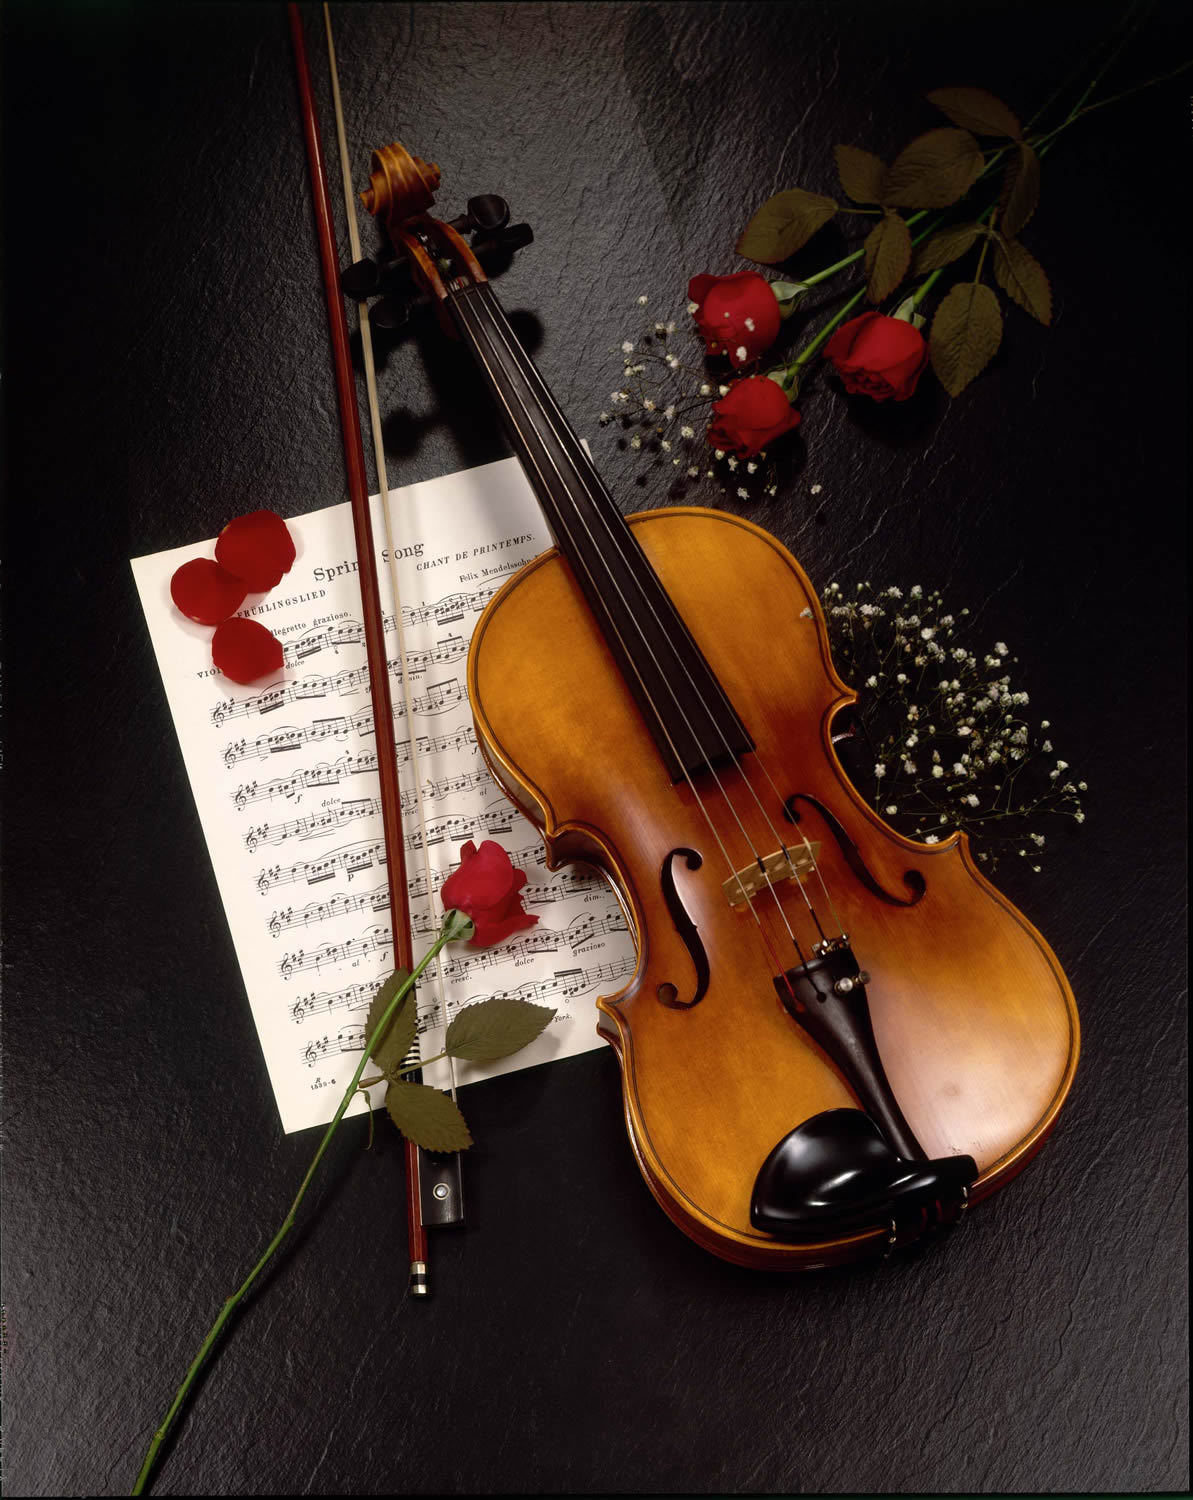 21786 download wallpaper Music, Flowers, Roses, Tools, Objects, Violins screensavers and pictures for free